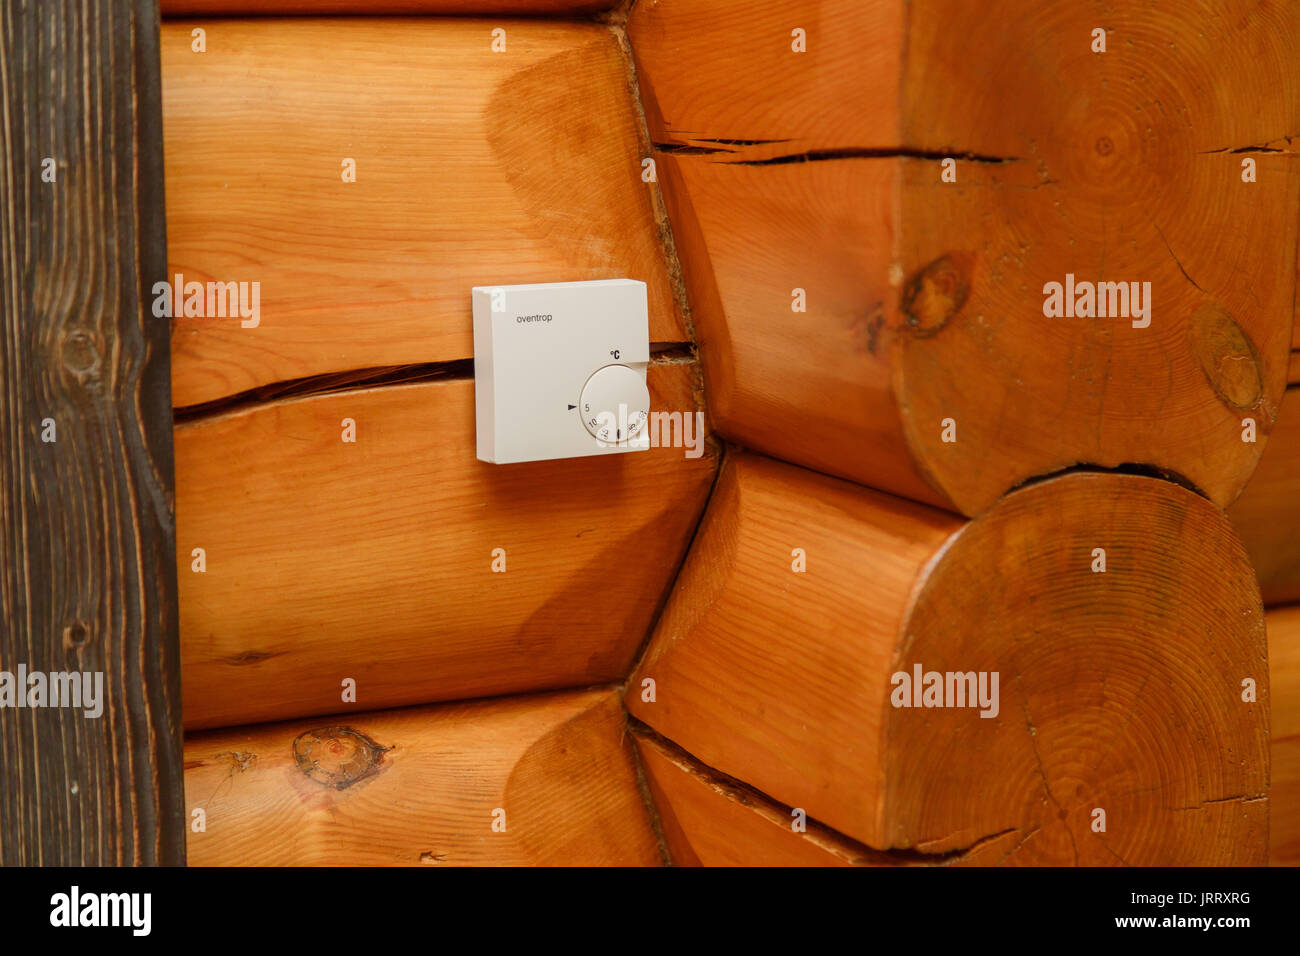 Room temperature controller for heating and cooling on a wall in a wooden house - Stock Image